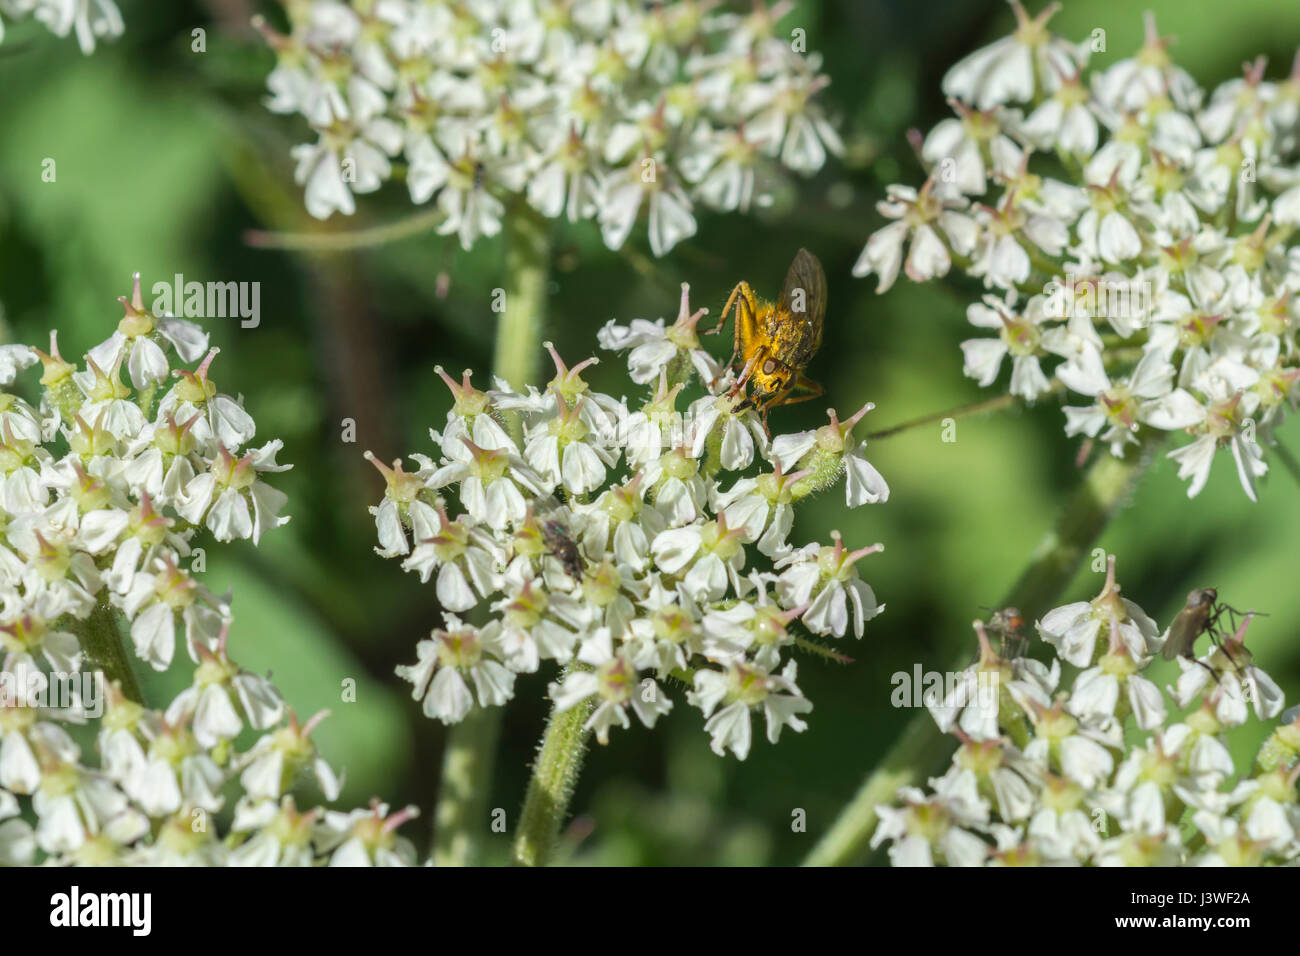 Hogweed flower cluster with Yellow Dung Fly (Scathophaga sterconia) feeding on nectar. - Stock Image